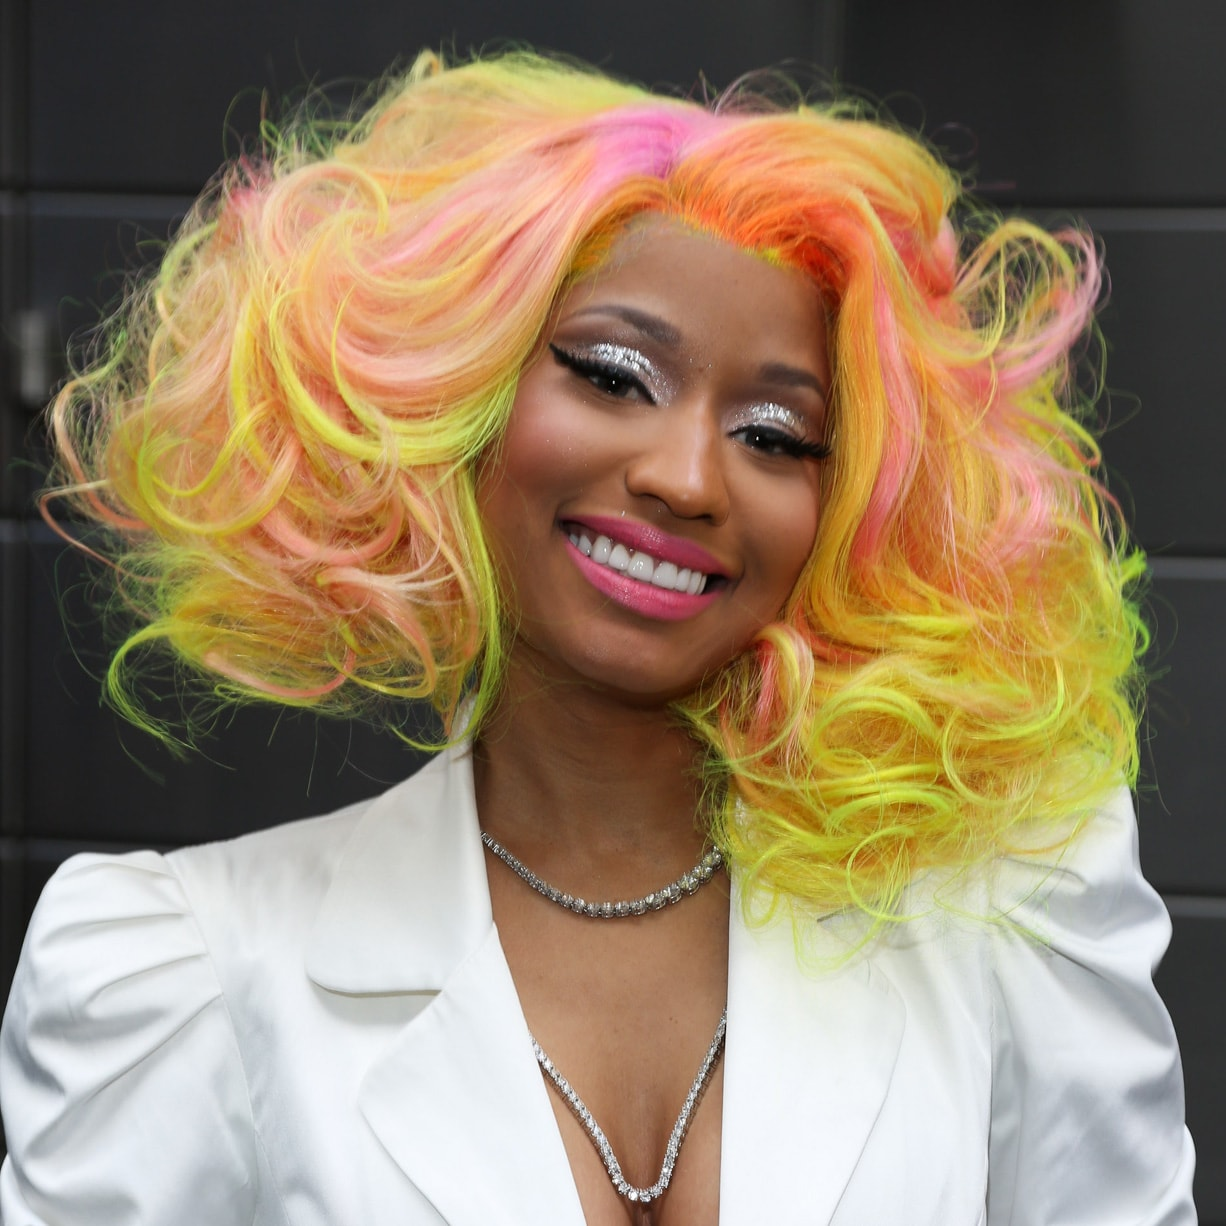 nicki minaj with yellow & orange